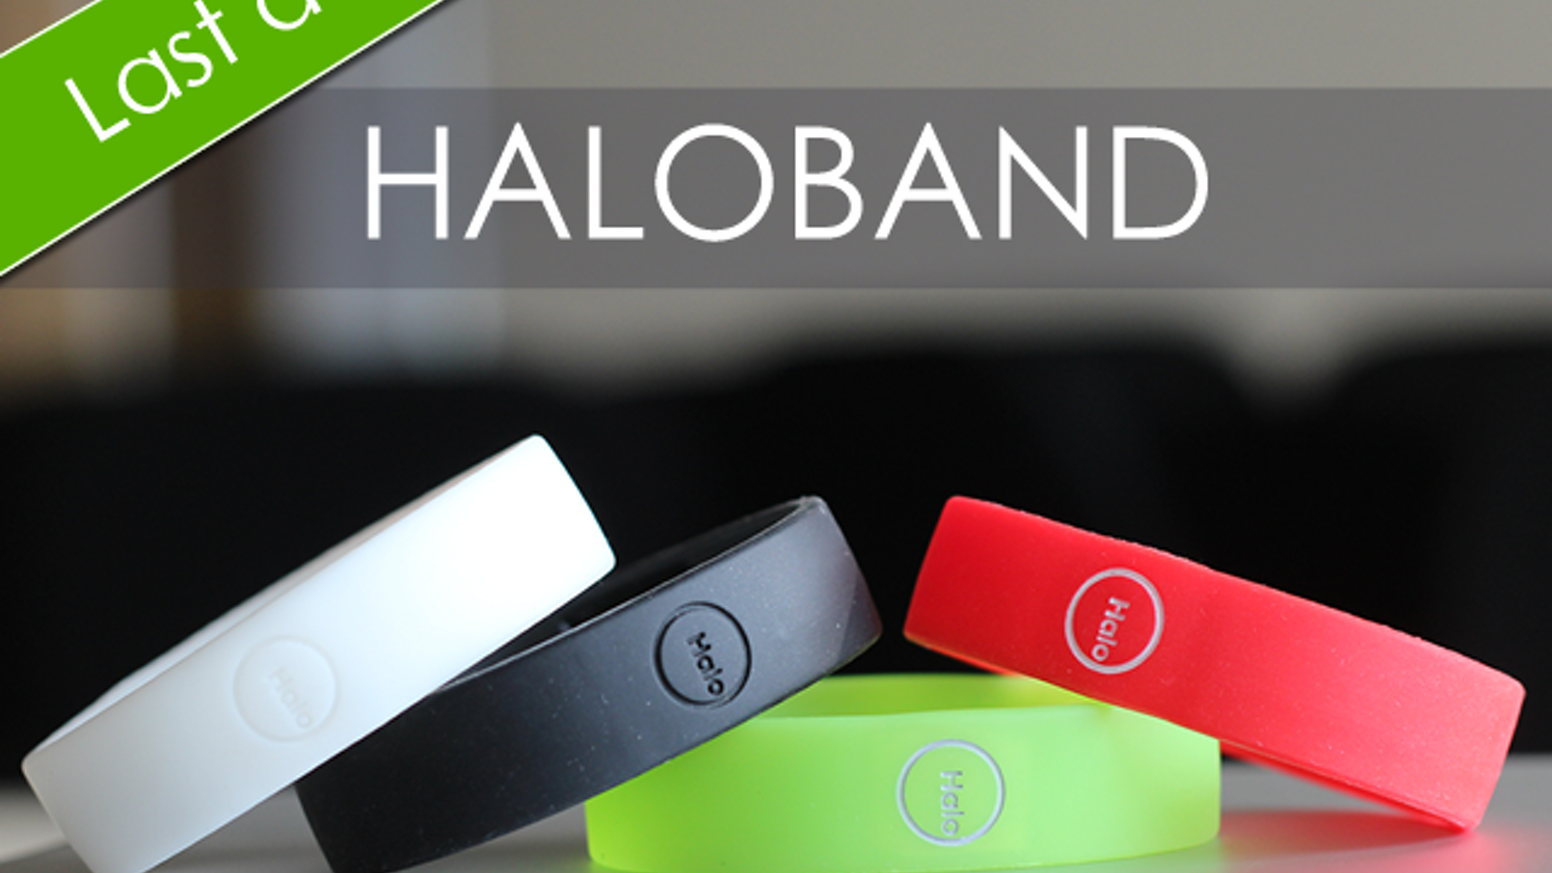 Haloband is a wearable device you can customize. Get your NFC smartphone common actions from just tapping. Let's make smart easy!